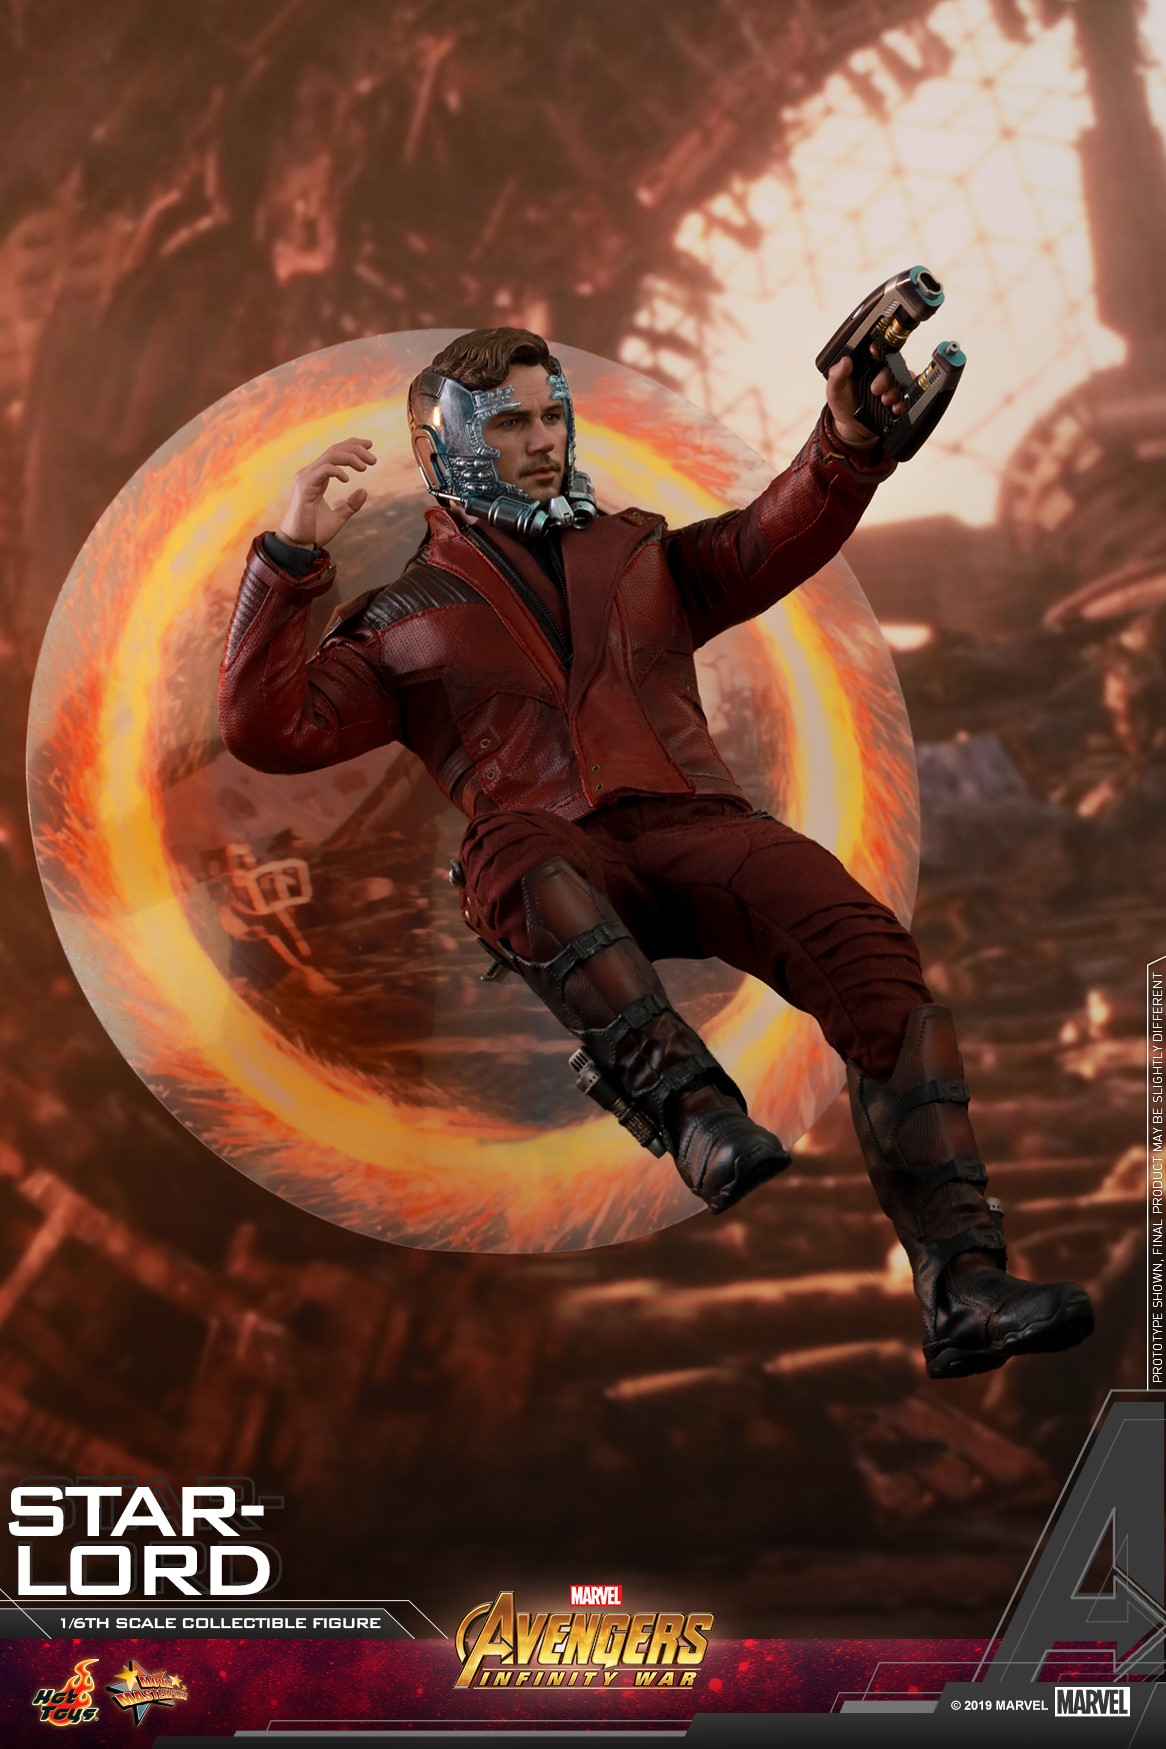 Avengers: Infinity War - Star-Lord Figure by Hot Toys - The